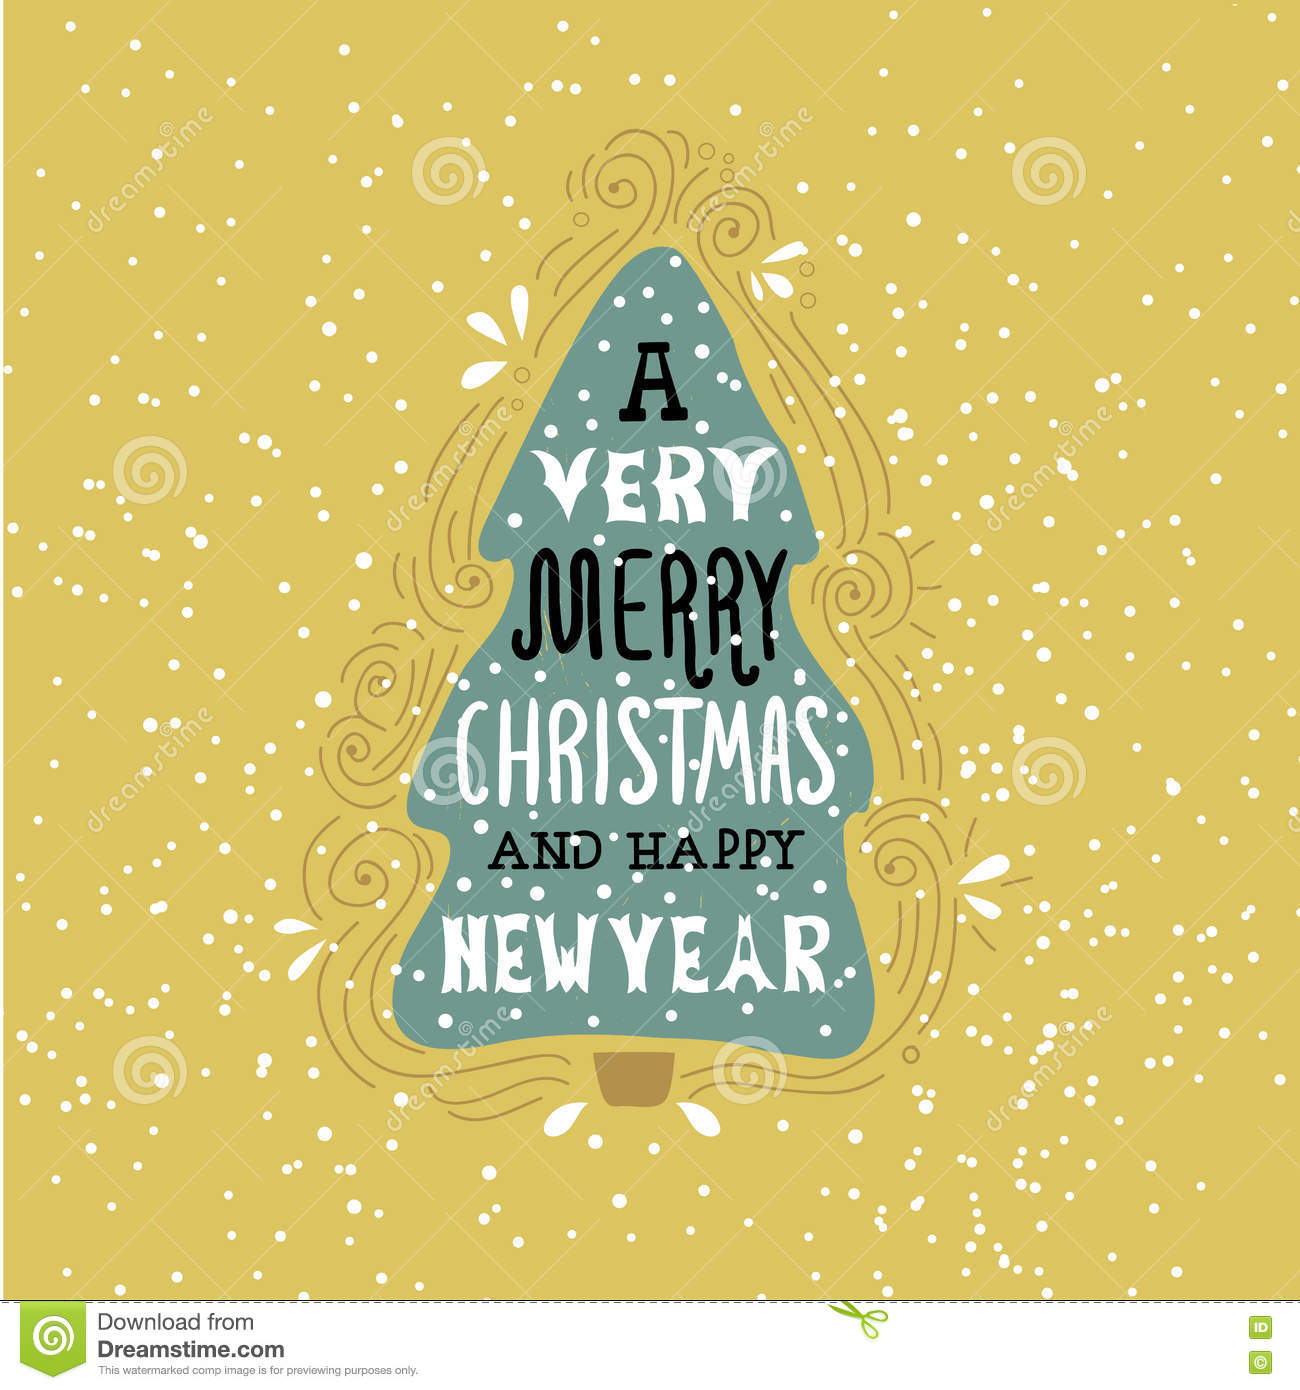 a very merry christmas winter holiday saying hand drawn greeting card with handwritten lettering